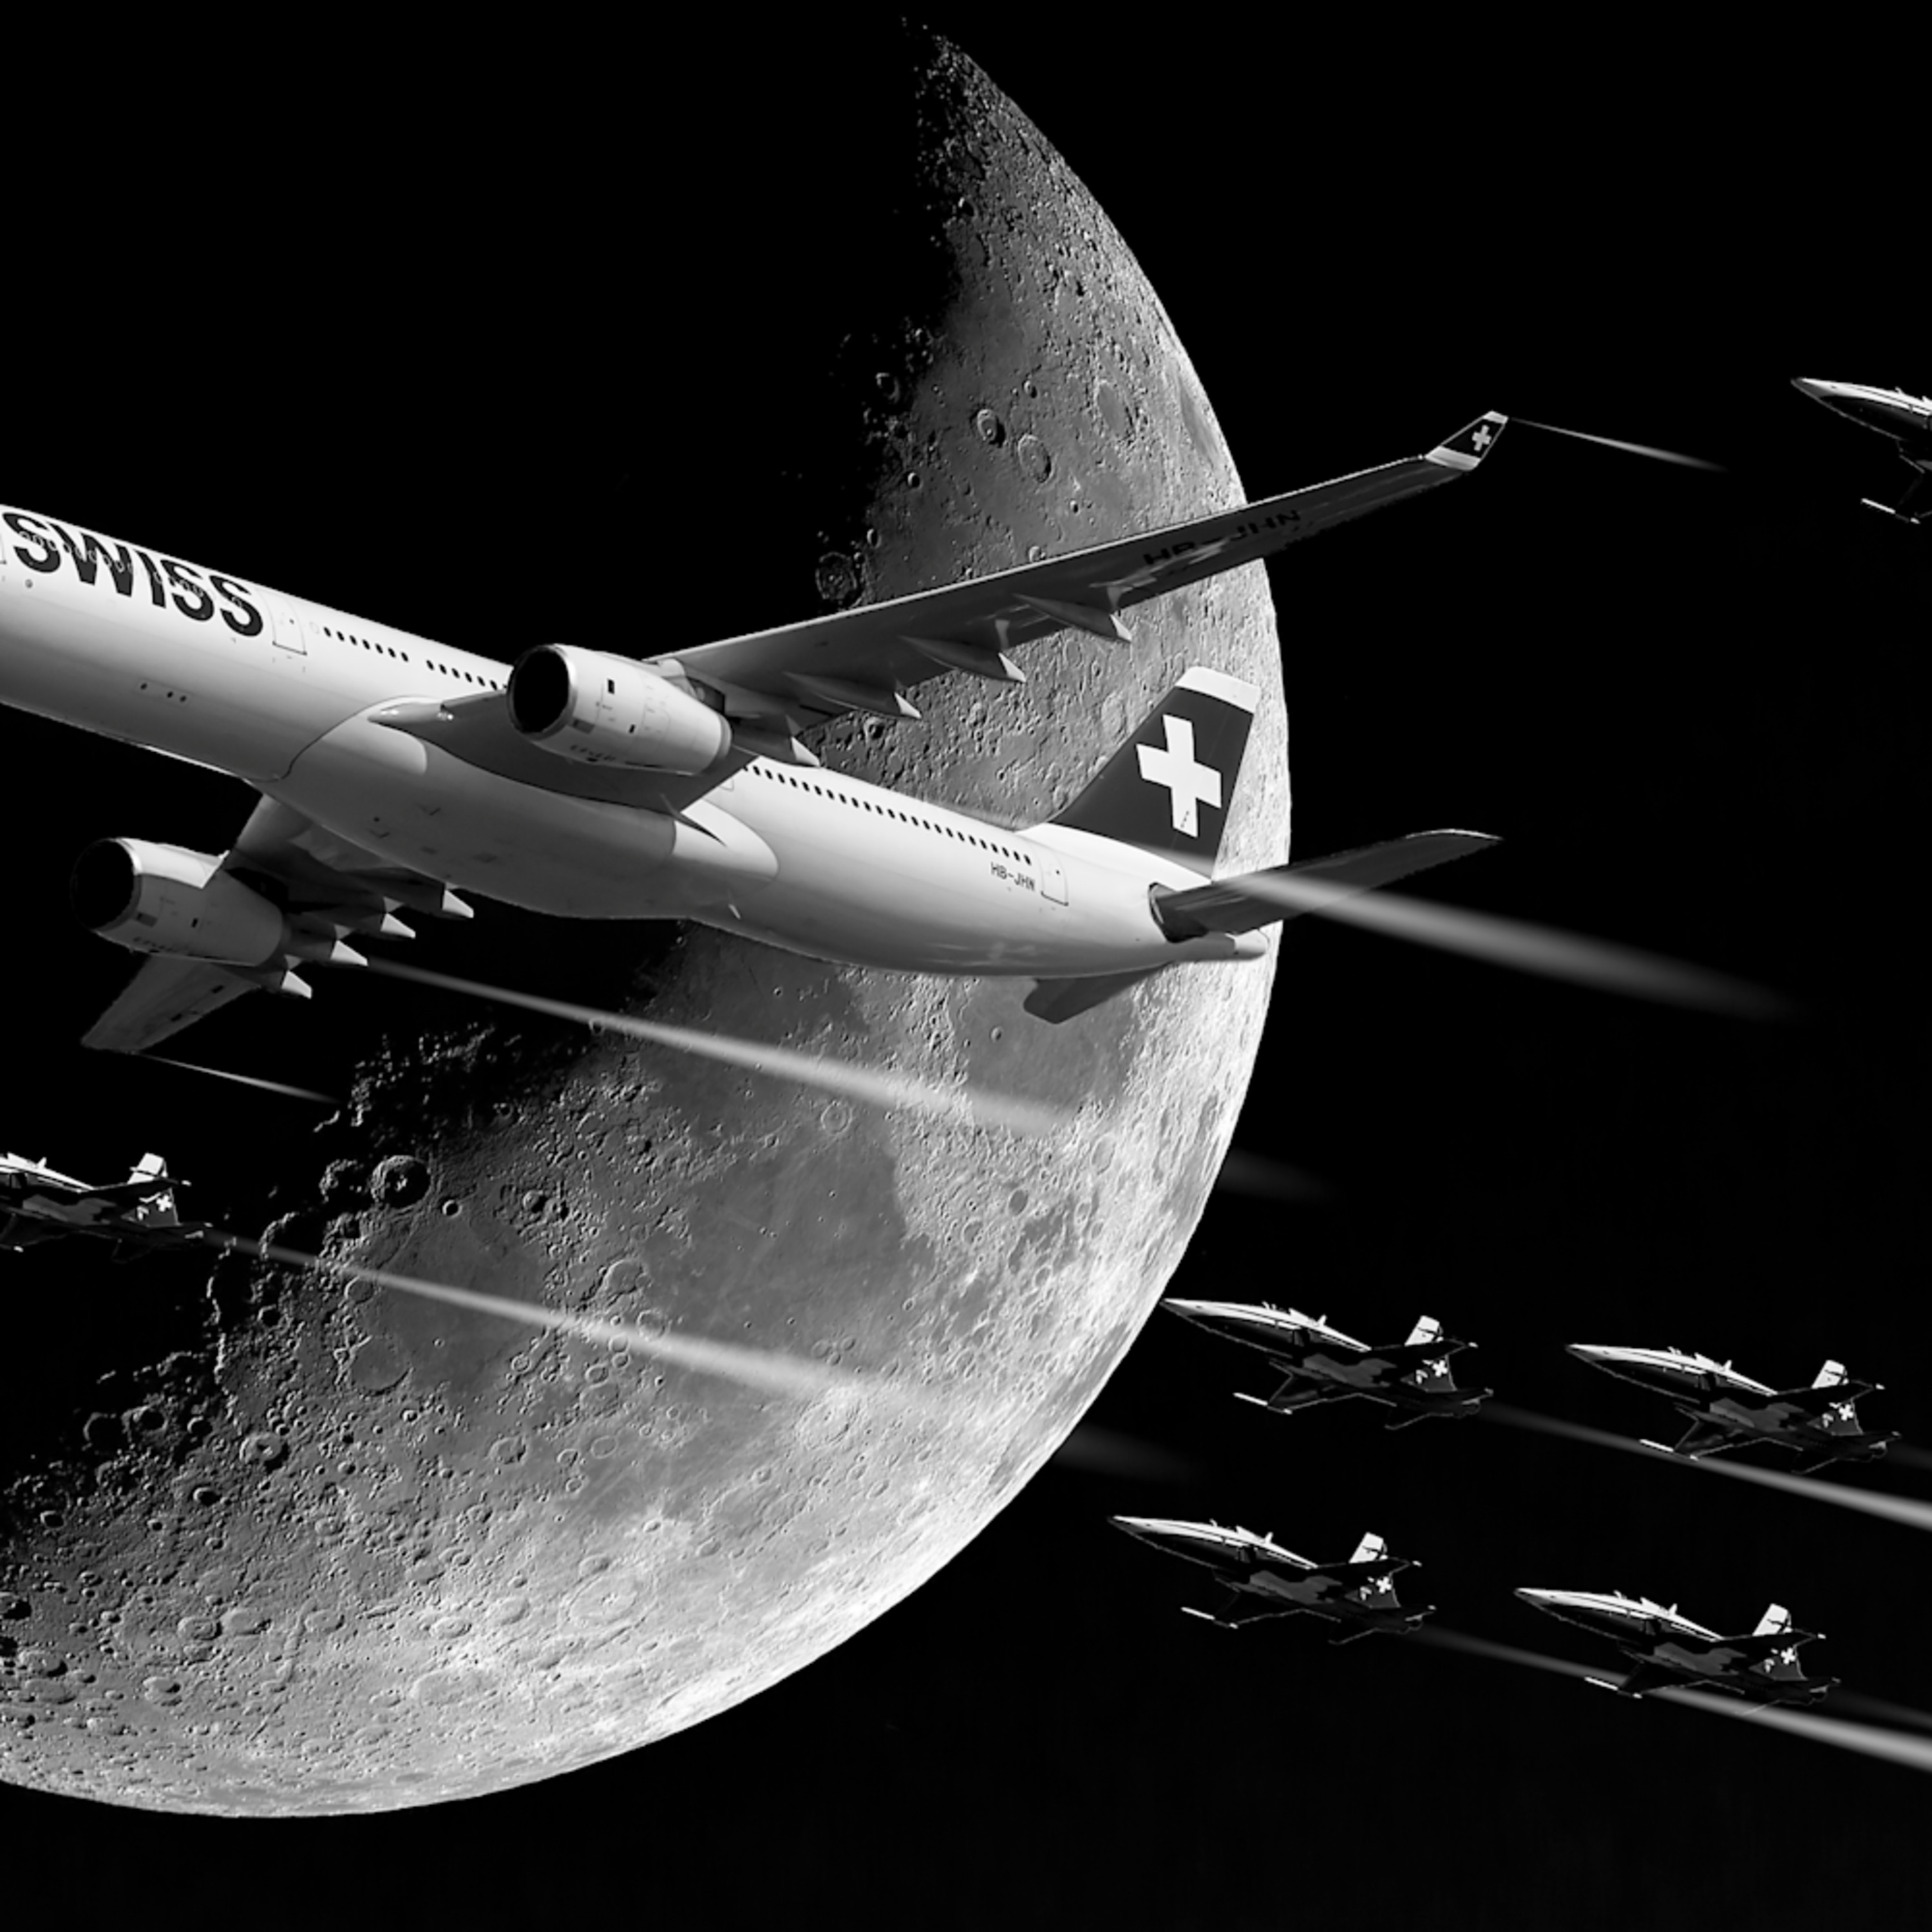 Fly over the moon mi94it